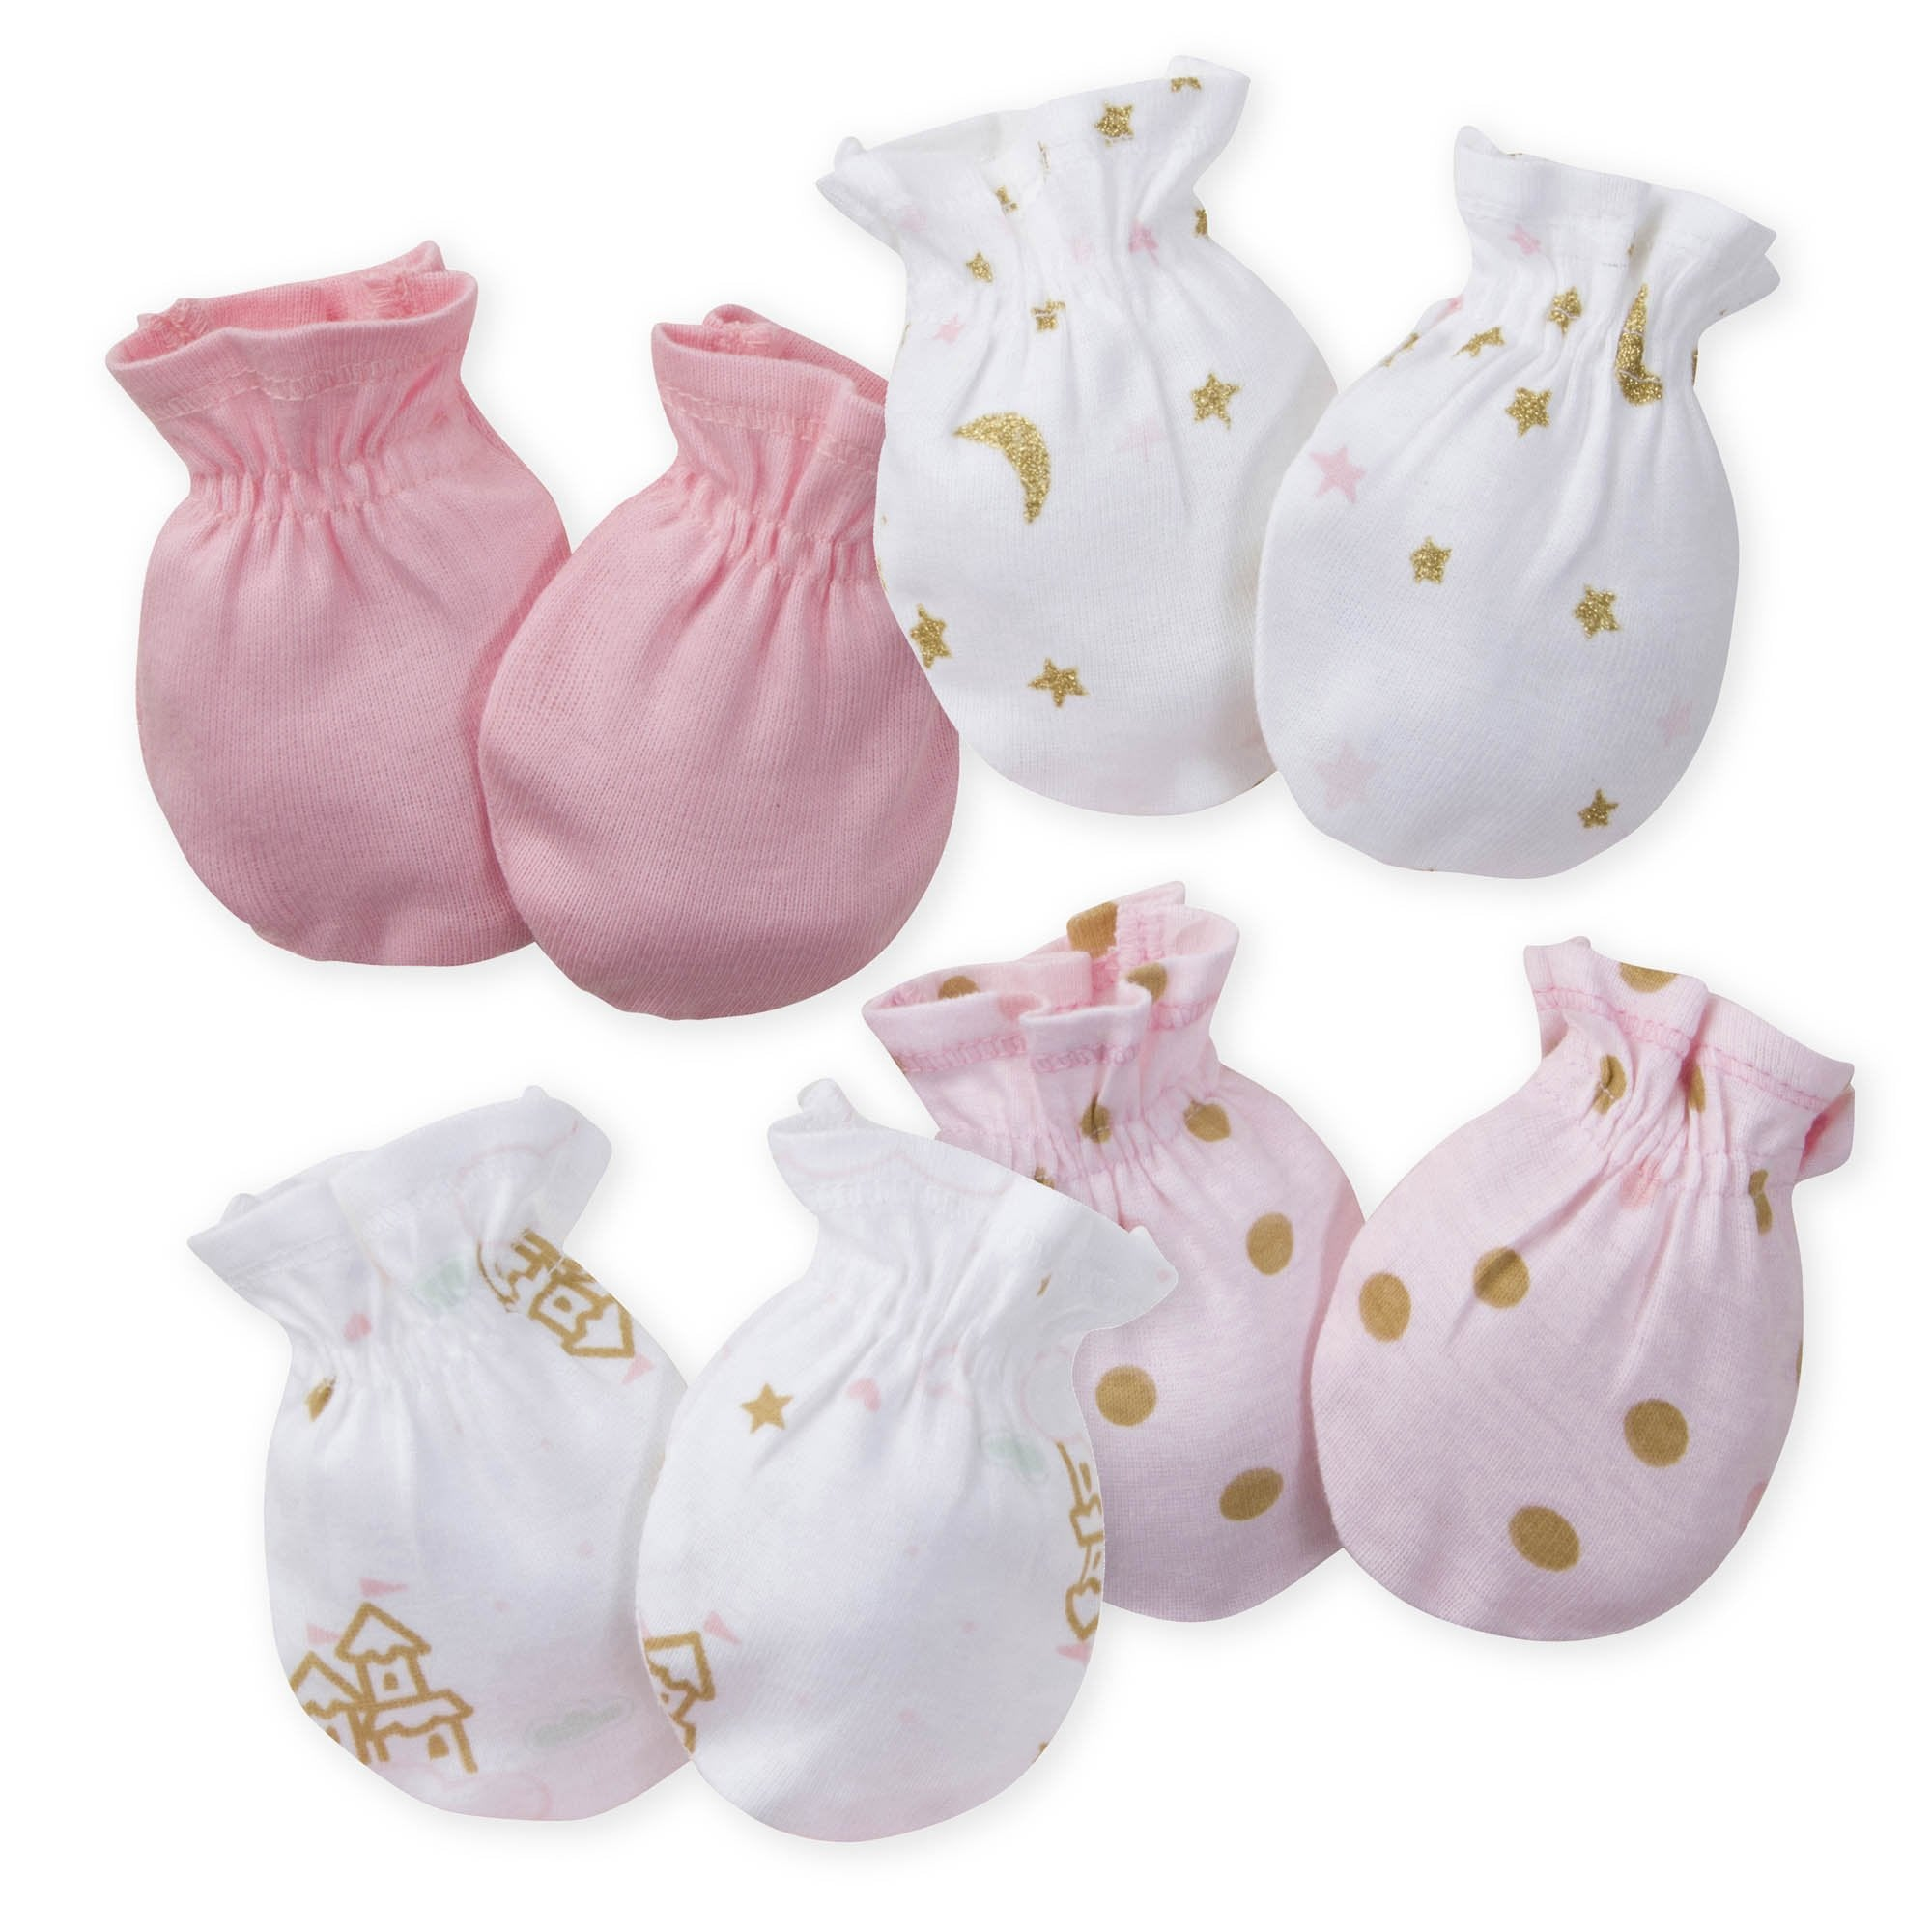 4-Pack Girls Princess Castle Mittens